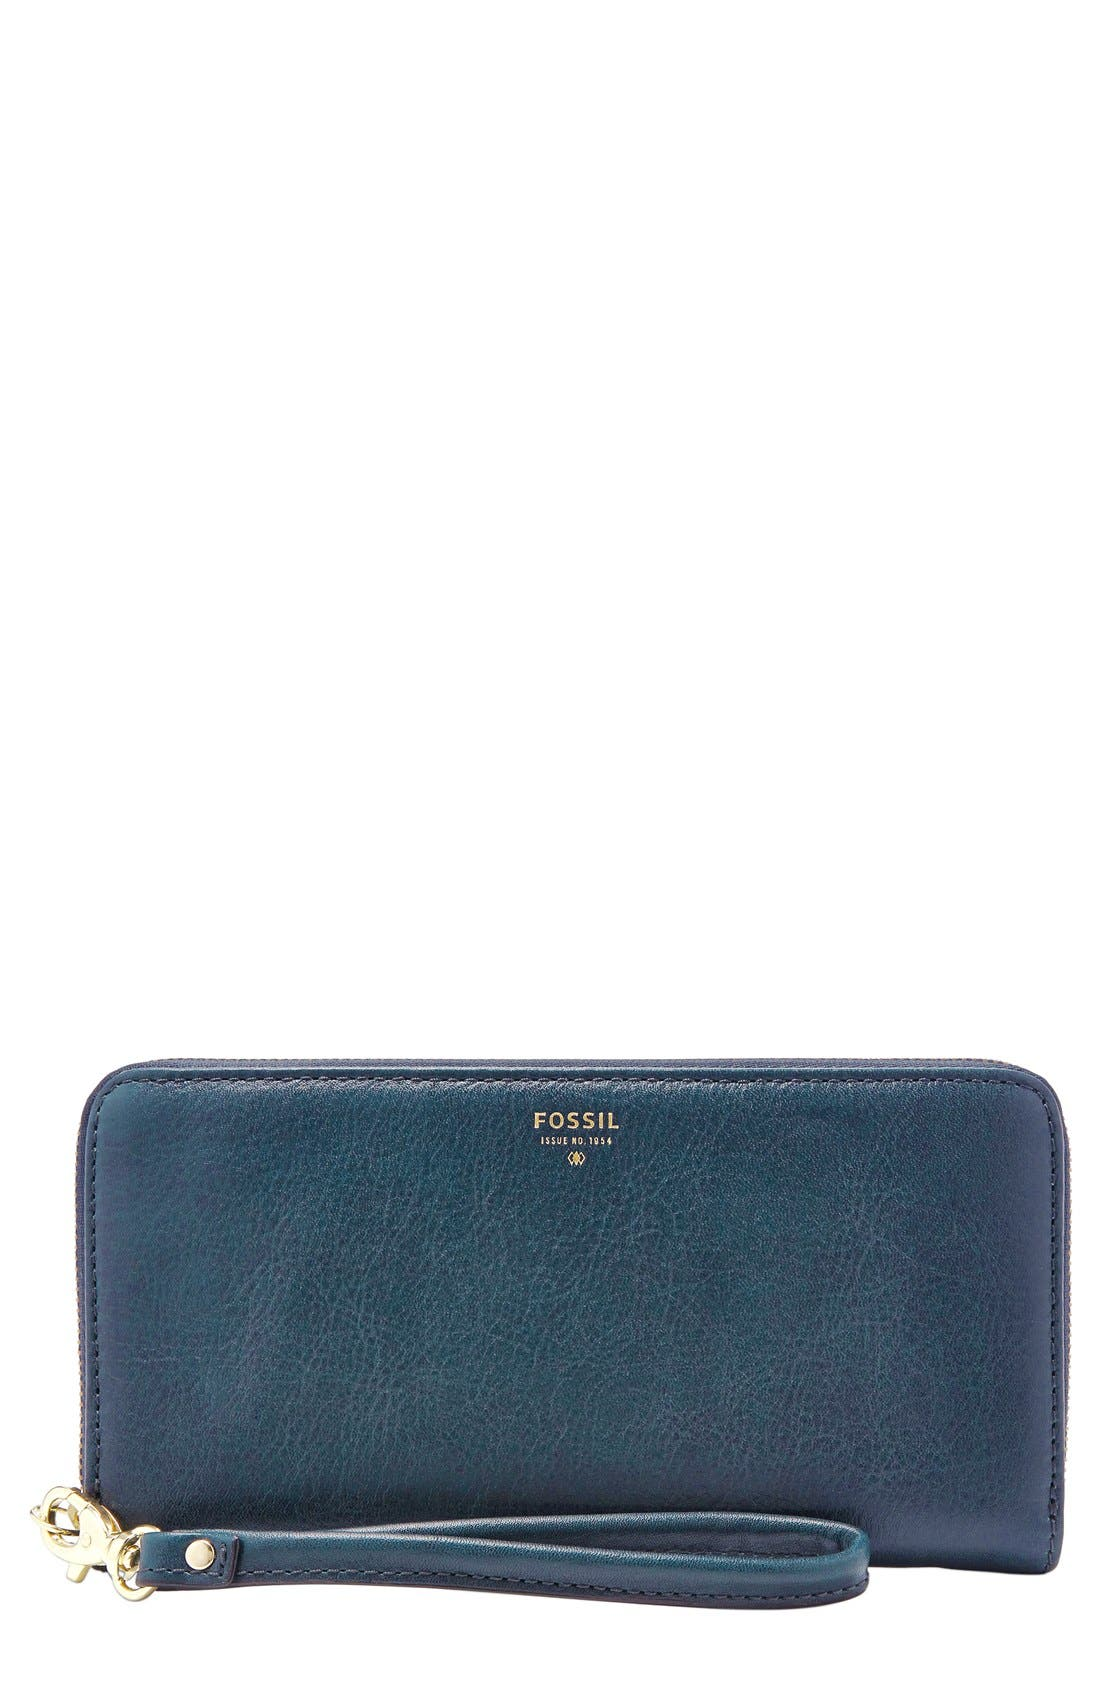 Main Image - Fossil 'Sydney' Zip Clutch Wallet